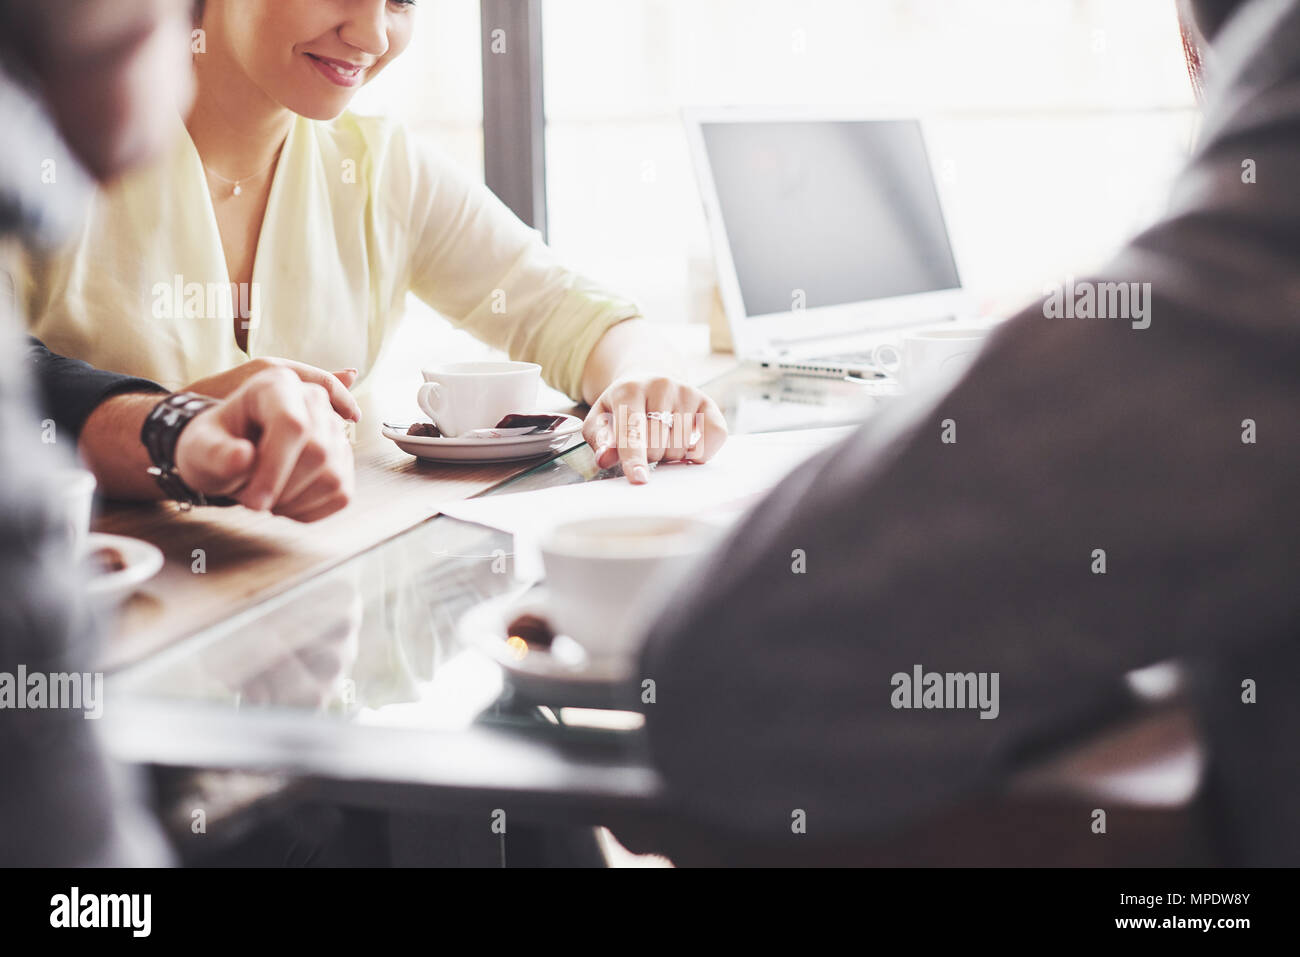 Group of casually dressed businesspeople discussing ideas. Creative professionals gathered for discuss the important issues of the new successful startup project. Teamwork Brainstorming Concept - Stock Image